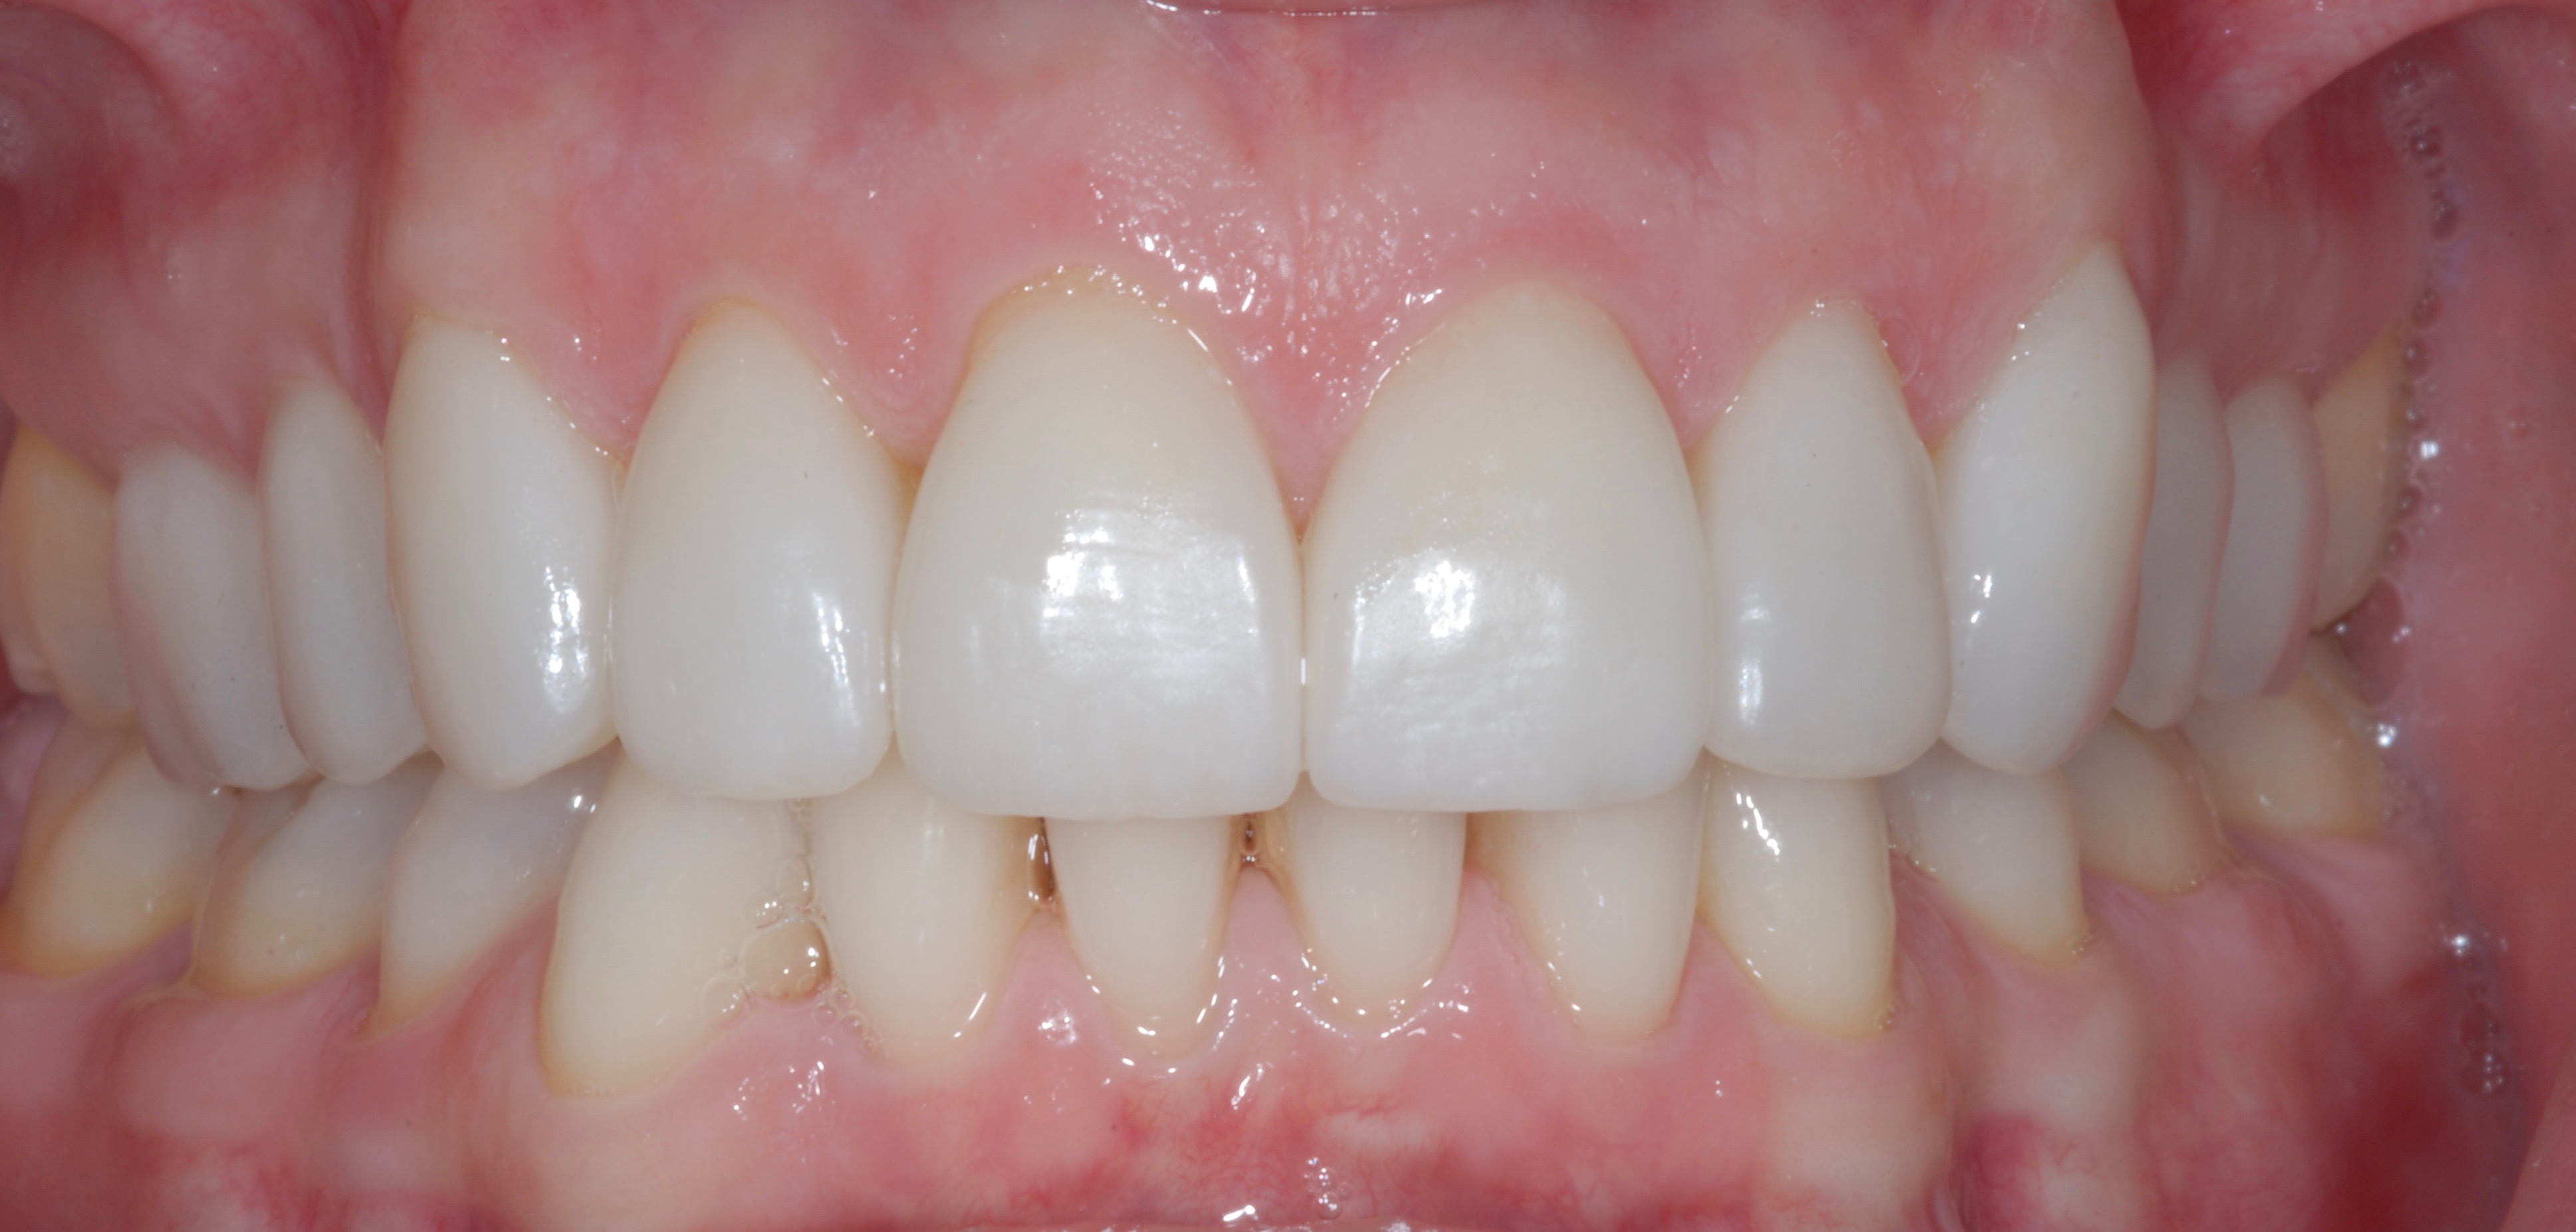 Ten Veneers - After